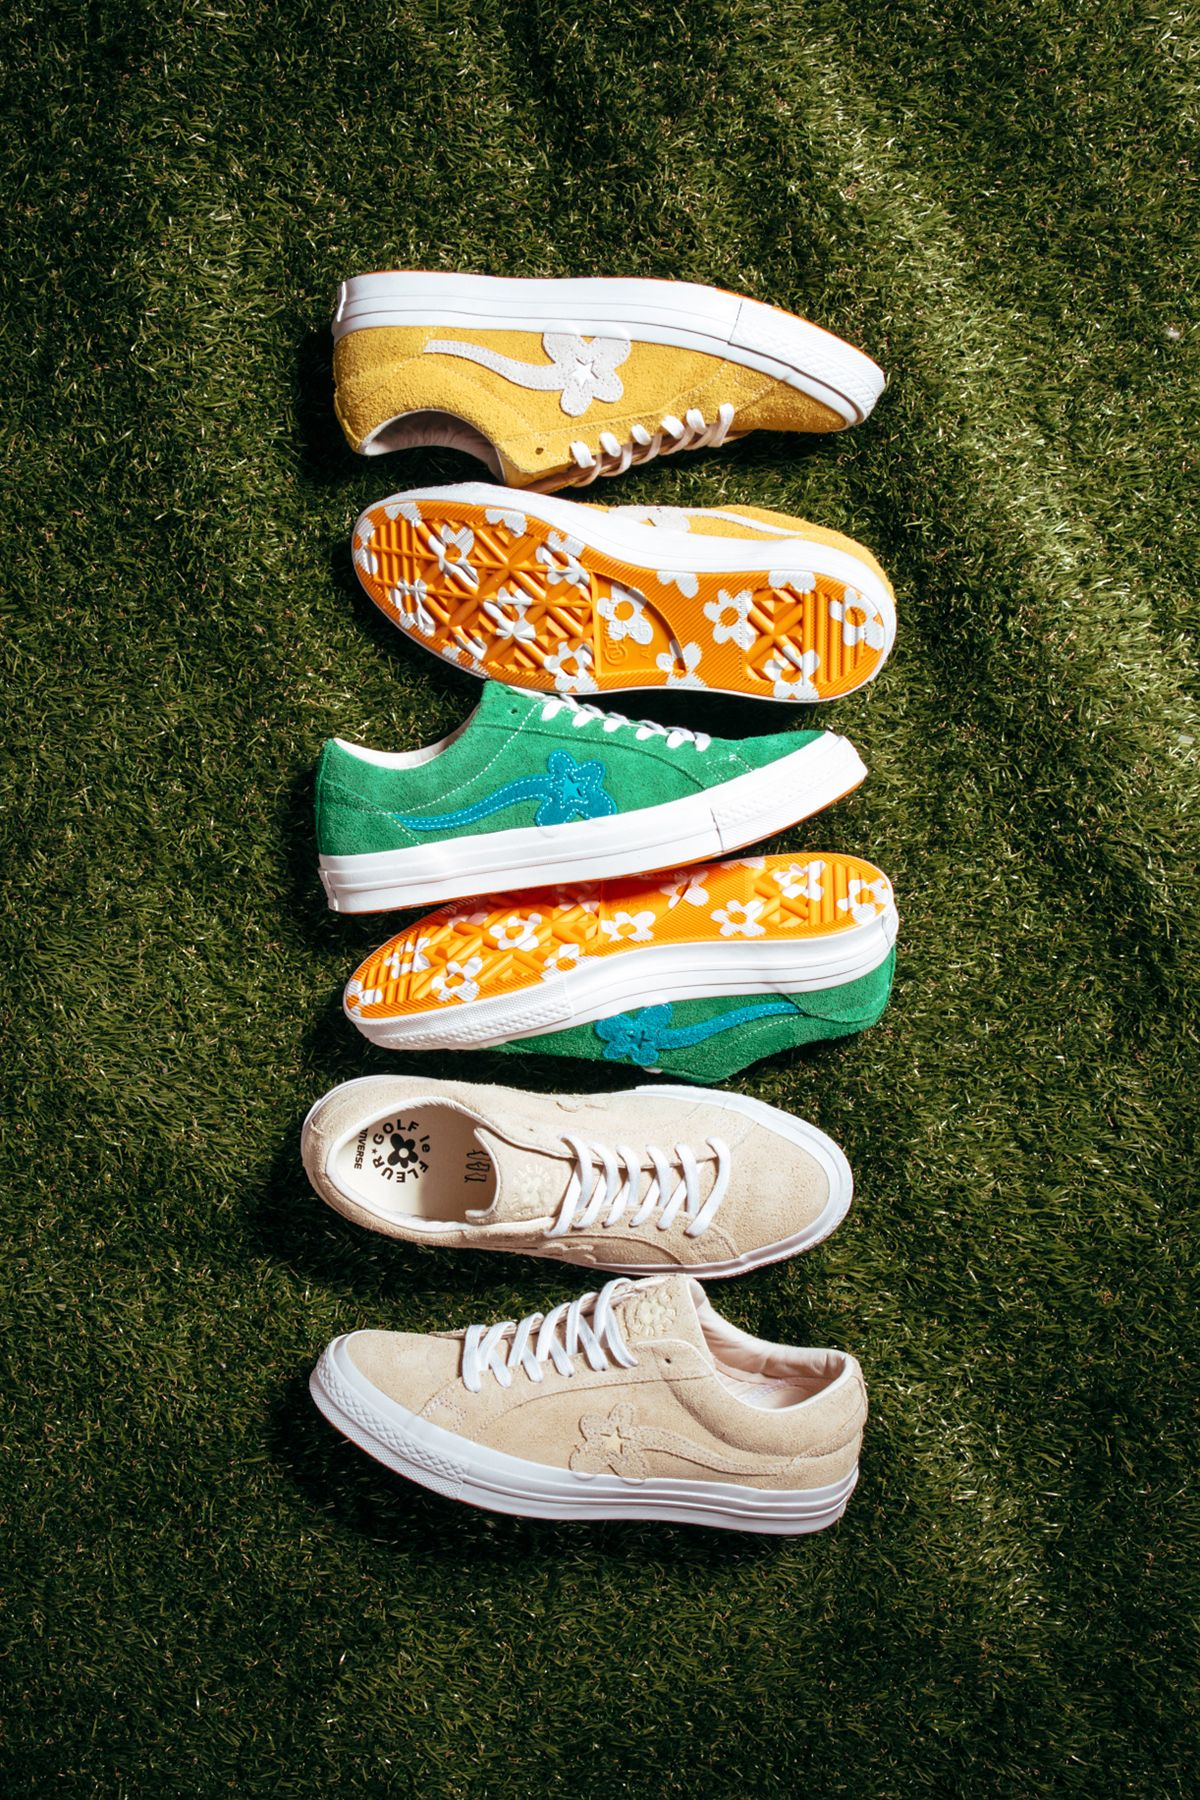 Converse X Tyler The Creator Golf Le Fleur In Yellow This Style